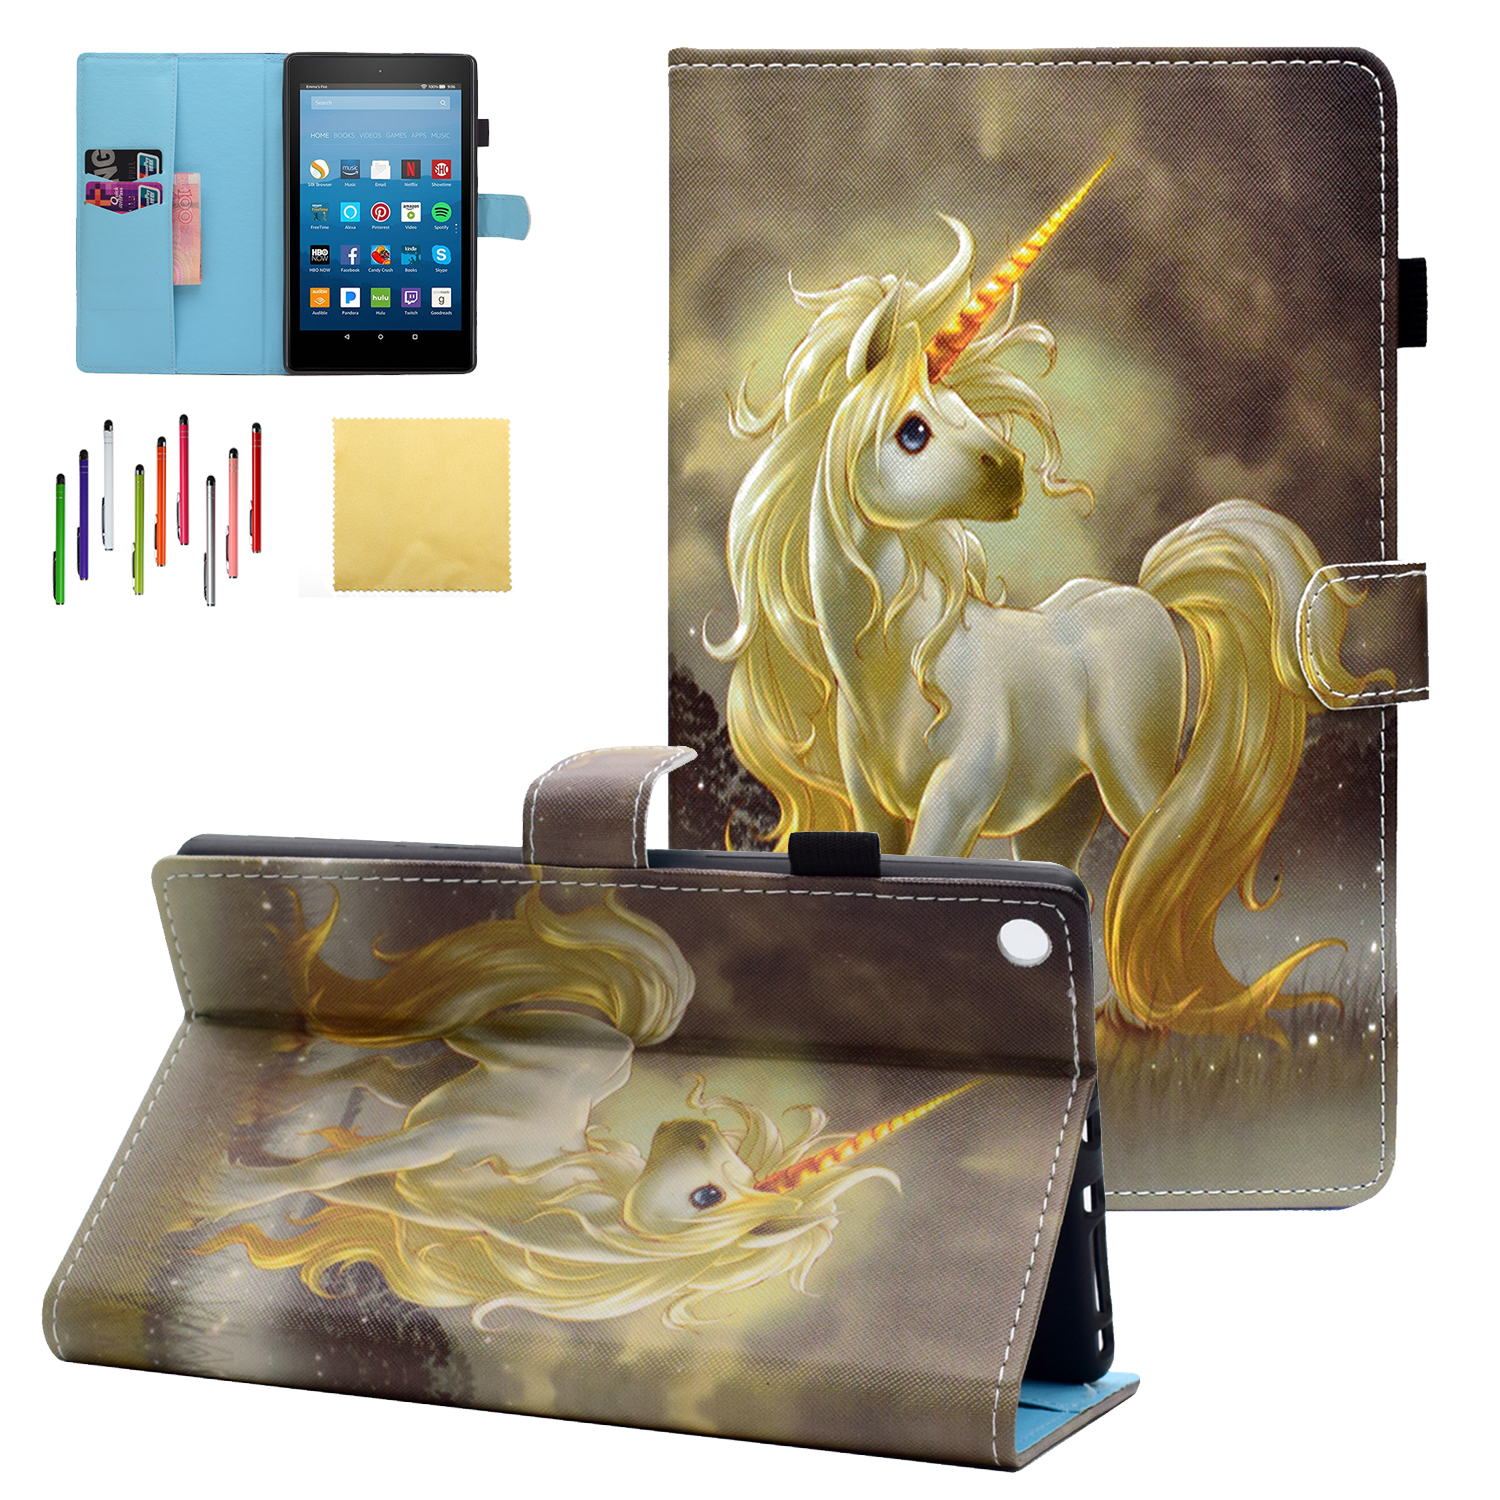 Fire HD 10-inch 2017/ 2015 Case, Goodest PU Leather Folio Folding Stand Cover with Auto Wake Sleep for All-New Amazon Kindle Fire HD 10 Tablet (5th/ 7th Generation), Horse